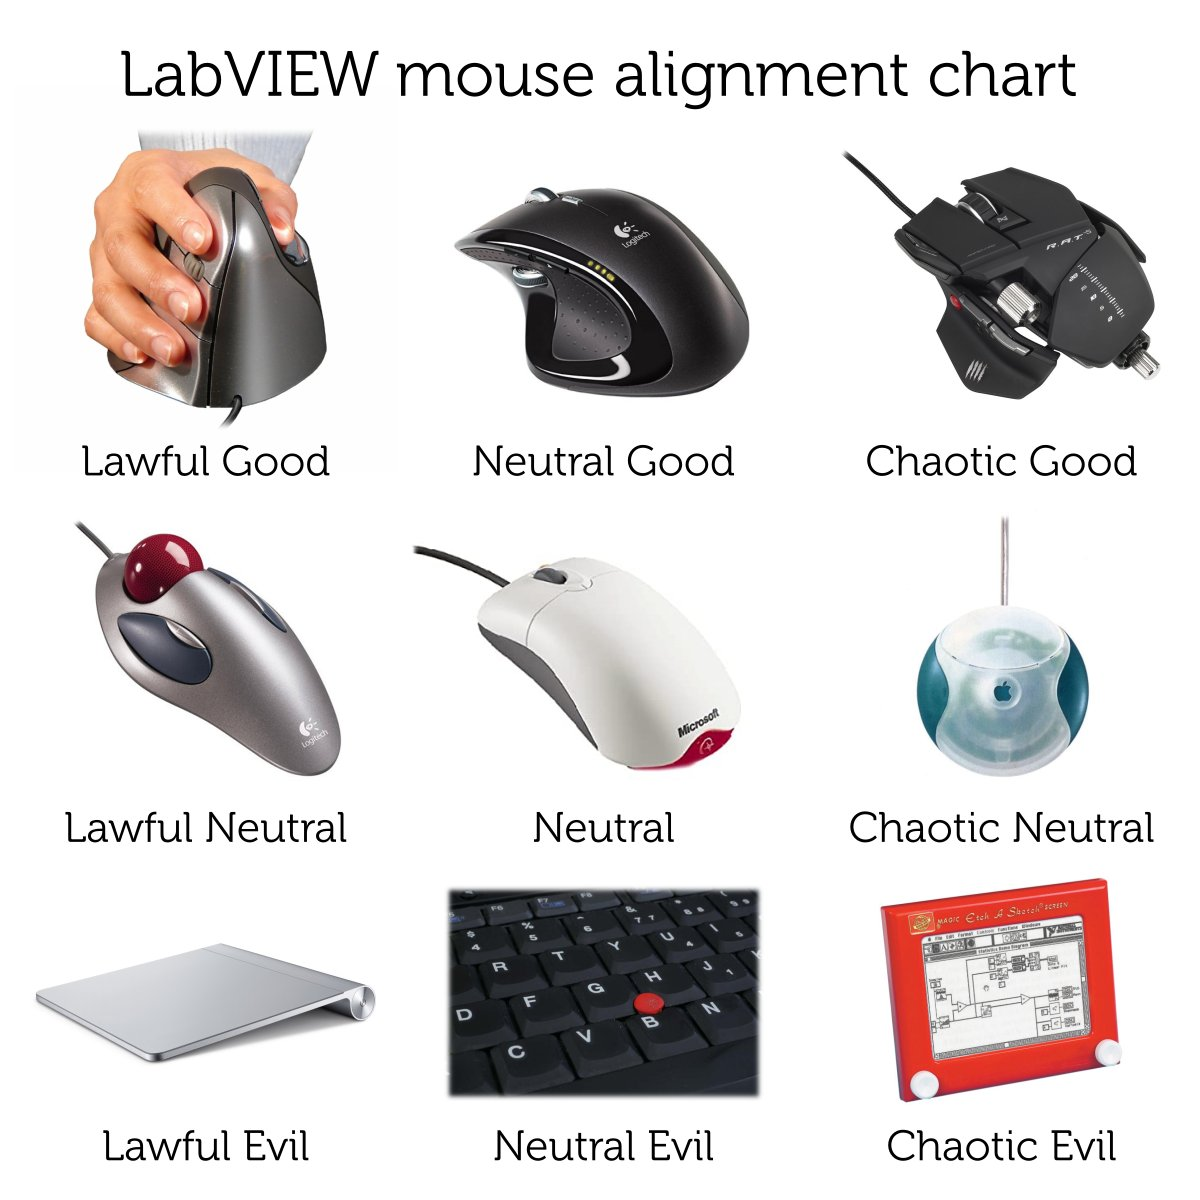 "LabVIEW mouse alignment chart. Lawful good: a vertical mouse. Neutral good: A Logitech mouse with top and side scroll wheels, buttons. Chaotic good: A ""Rat"" mouse which looks kinda cyberpunk. Lawful good: A trackball mouse. Neutral: A standard Microsoft two button and scrollwheel mouse. Chaotic neutral: An Apple puck mouse. Lawful evil: An Apple trackpad. Neutral evil: A keyboard trackpoint (nipple) mouse. Chaotic evil: An etch-a-sketch toy."